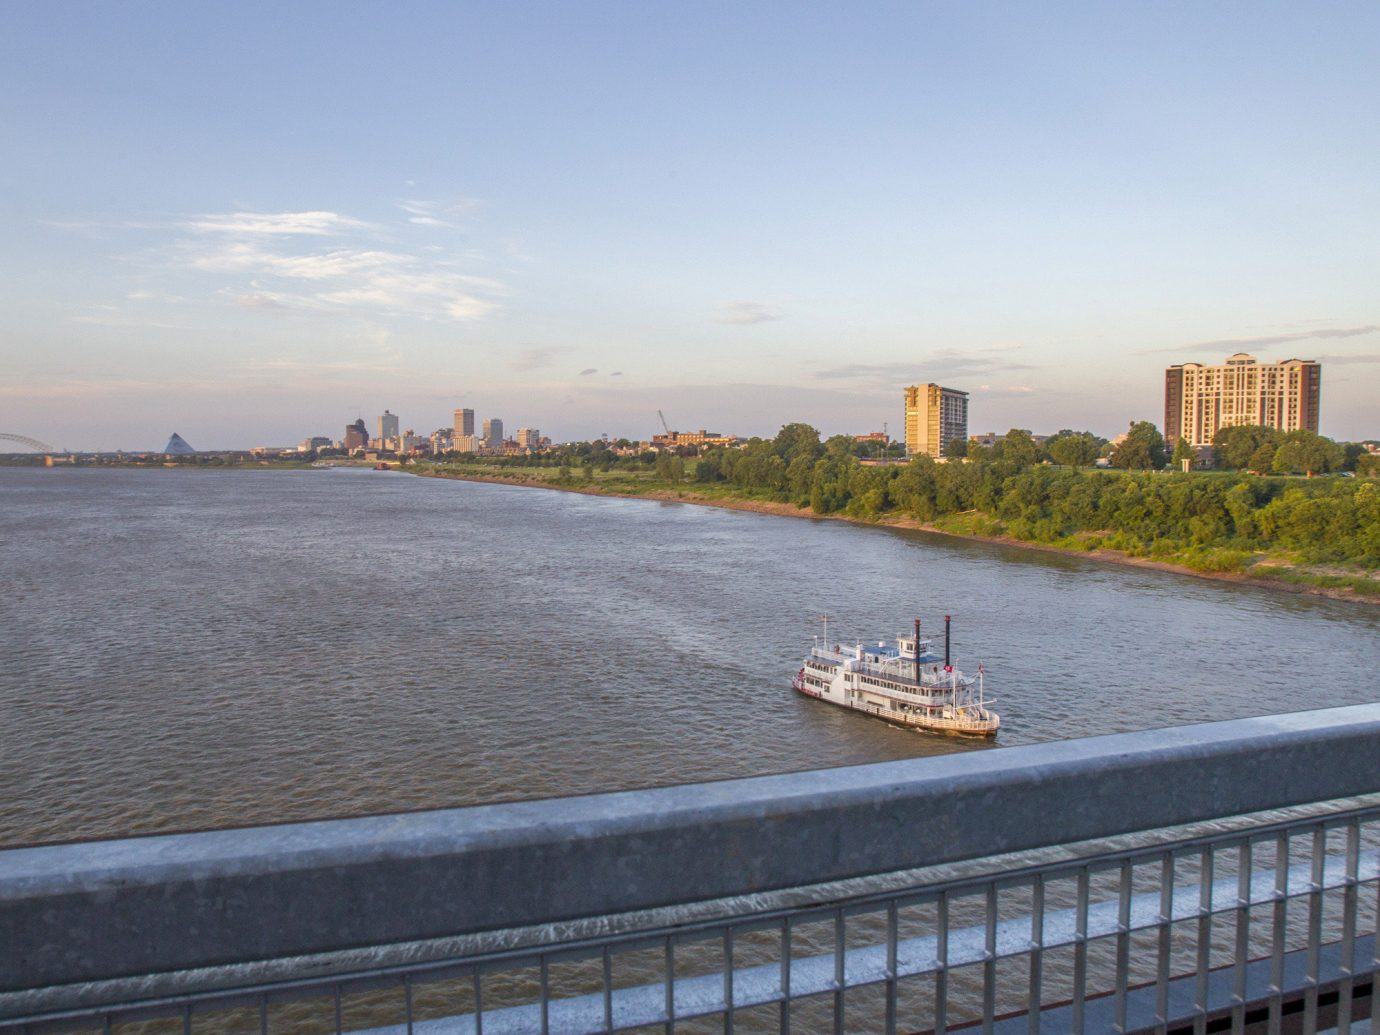 Trip Ideas sky outdoor water River waterway skyline City Sea daytime horizon water resources channel bank Downtown Coast reservoir building roof traveling shore